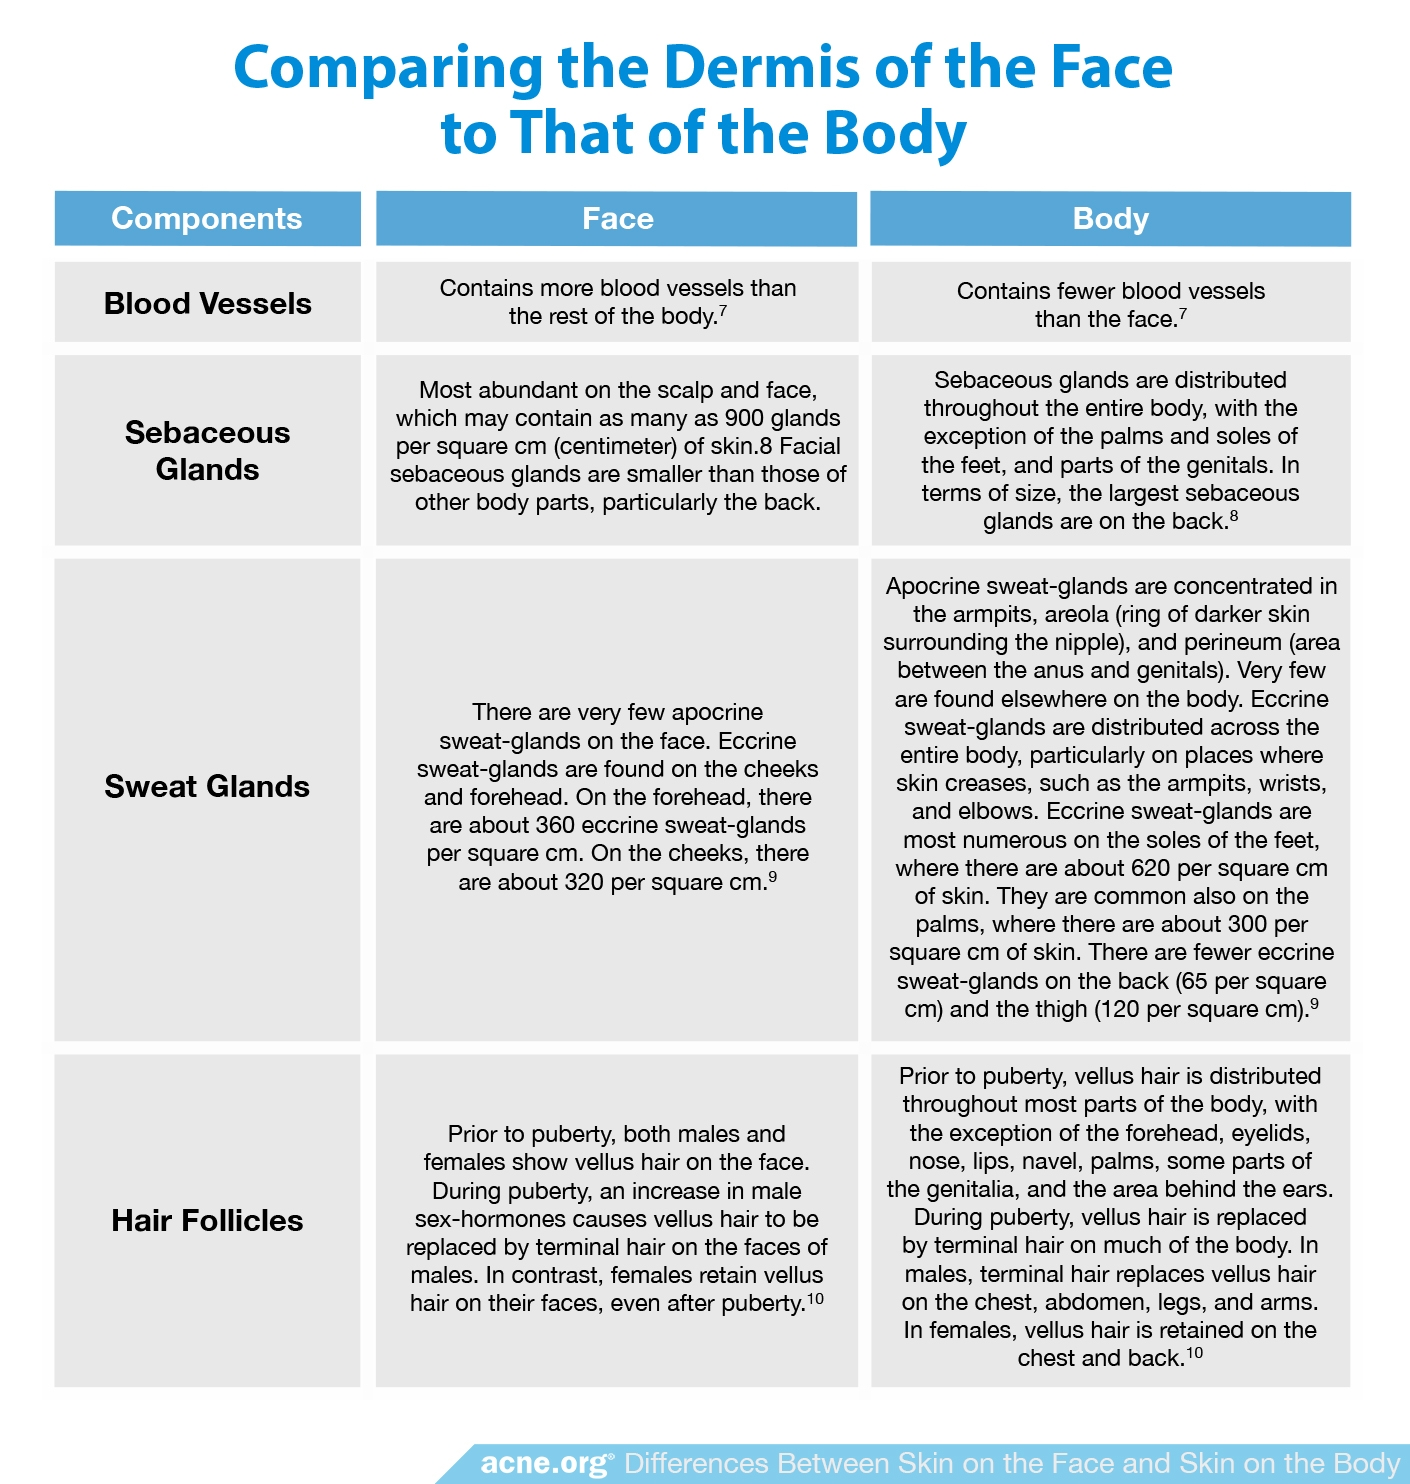 Comparing the Dermis of the Face to That of the Body